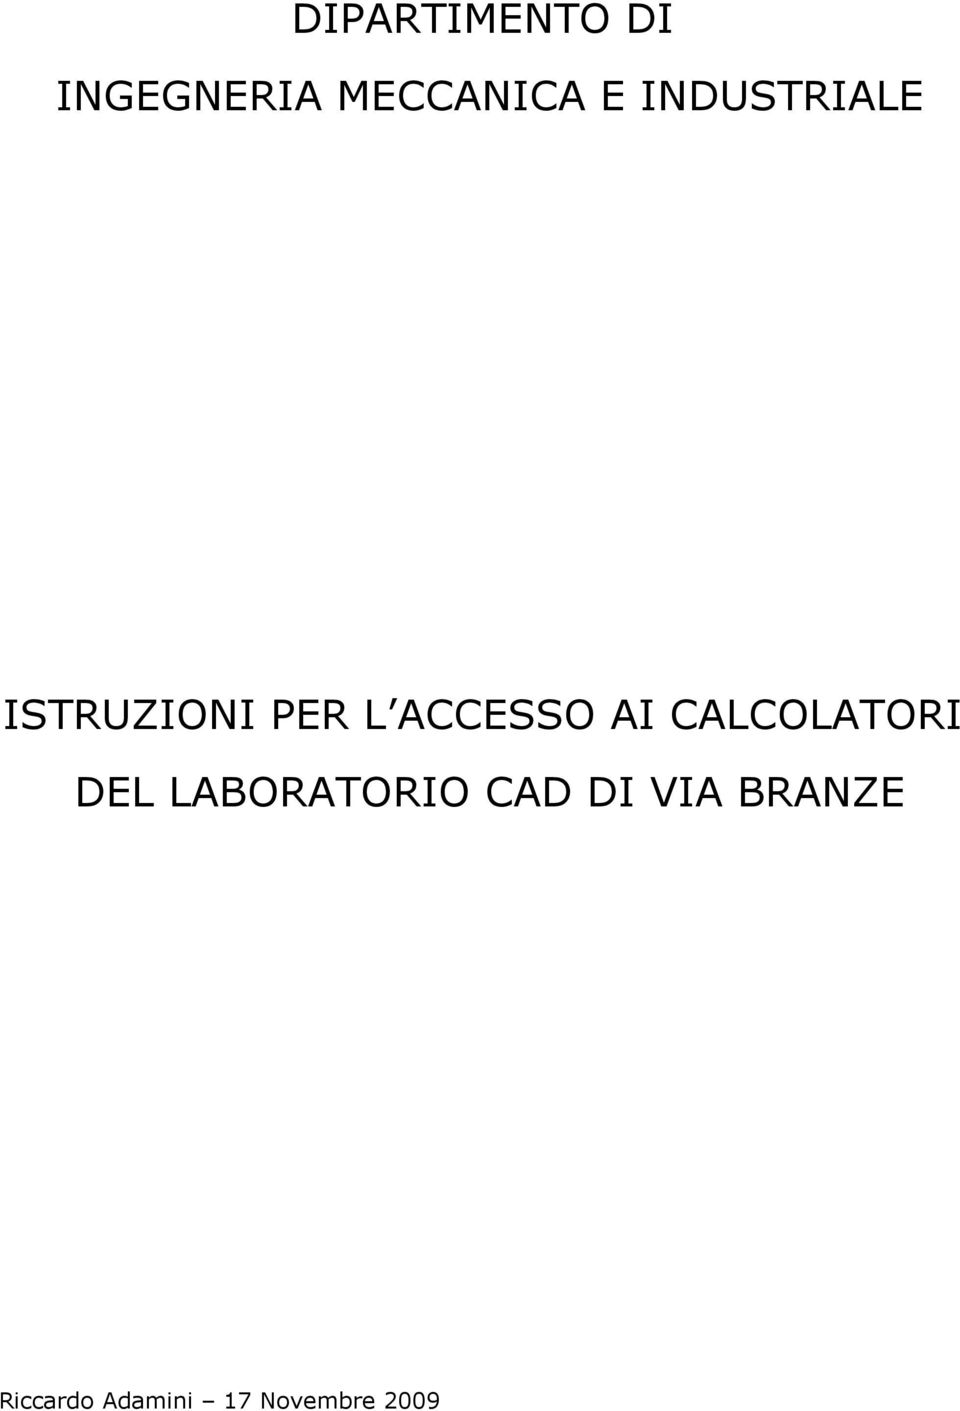 CALCOLATORI DEL LABORATORIO CAD DI VIA